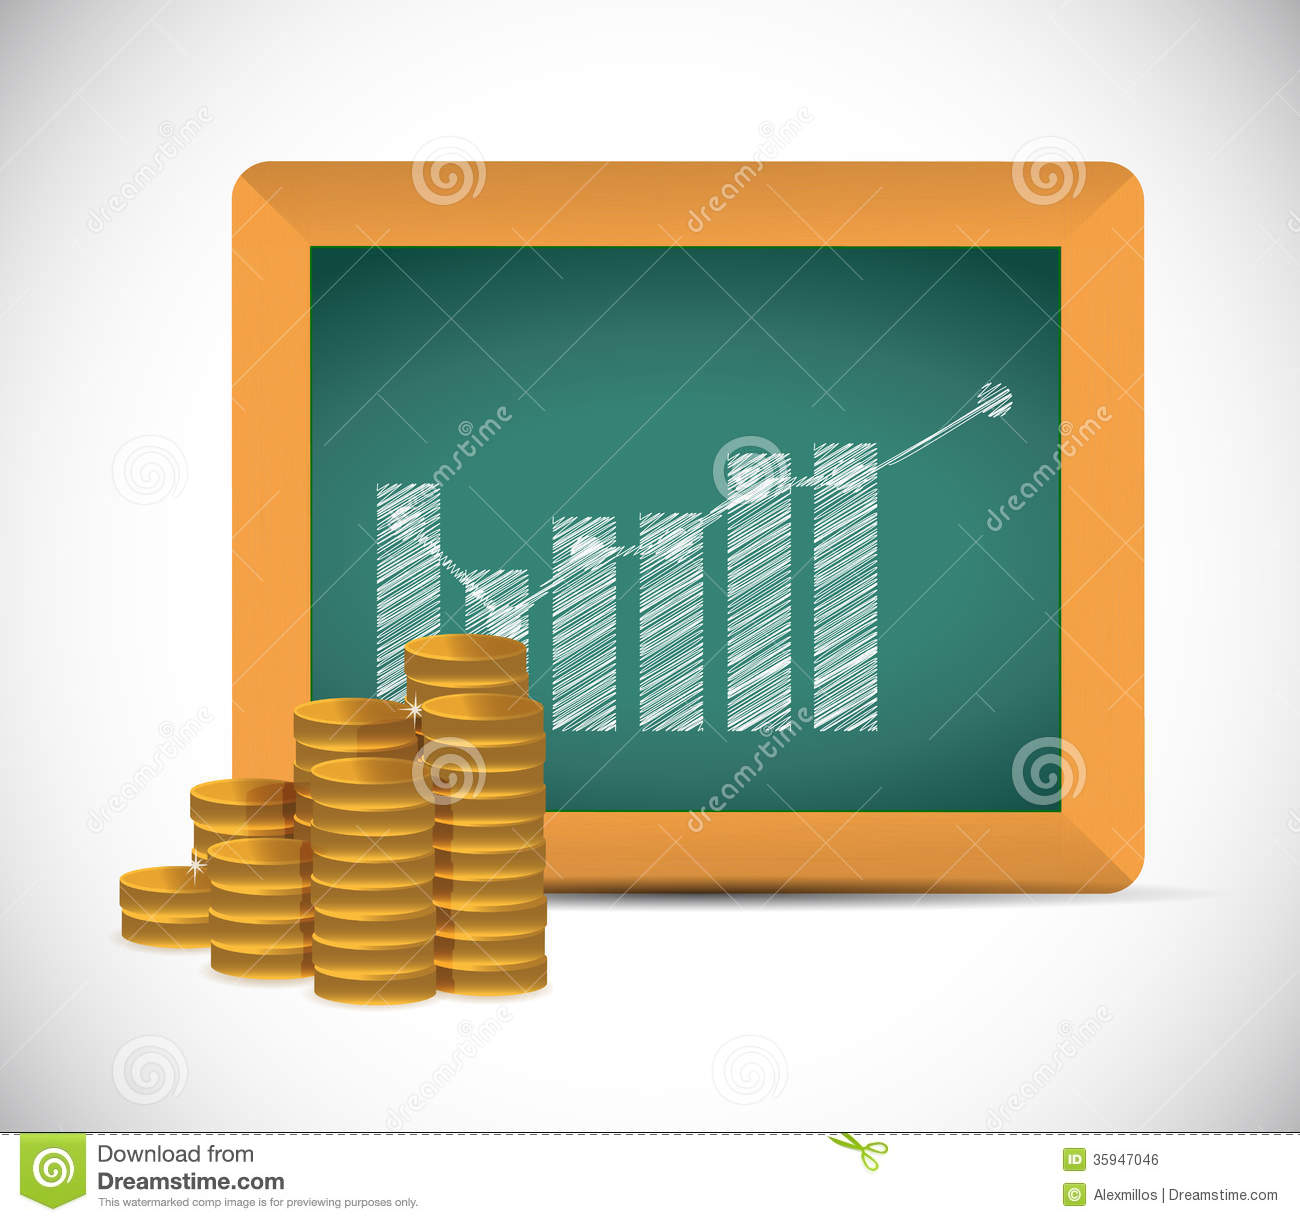 Monetary Educational Concept Illustration Design Royalty Free.